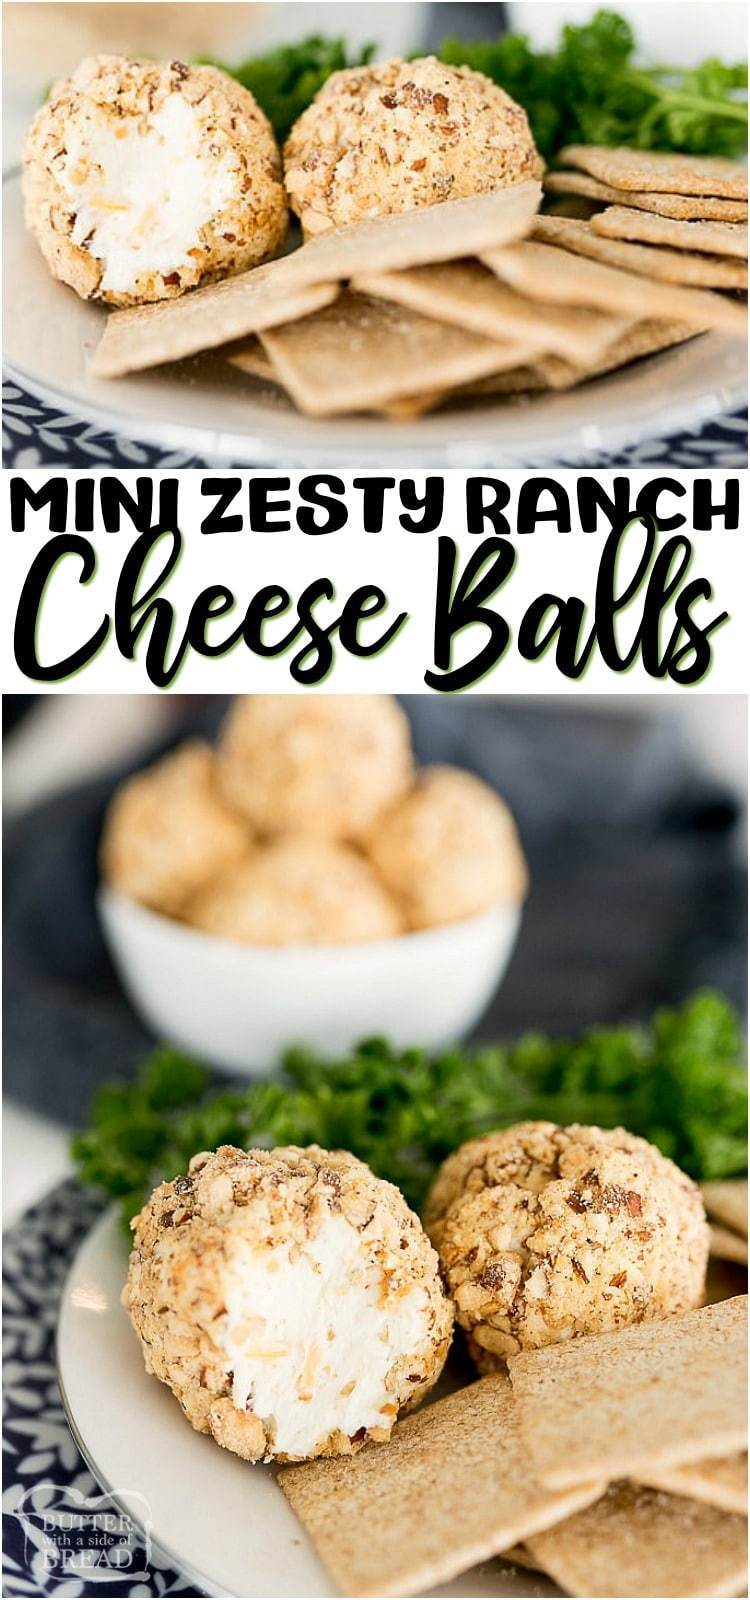 Mini Cheese Balls are everything you love about an ordinary Cheese Ball, only personal sized! The zesty ranch cream cheese ball recipe smeared on a crunchy cracker is the best appetizer around.